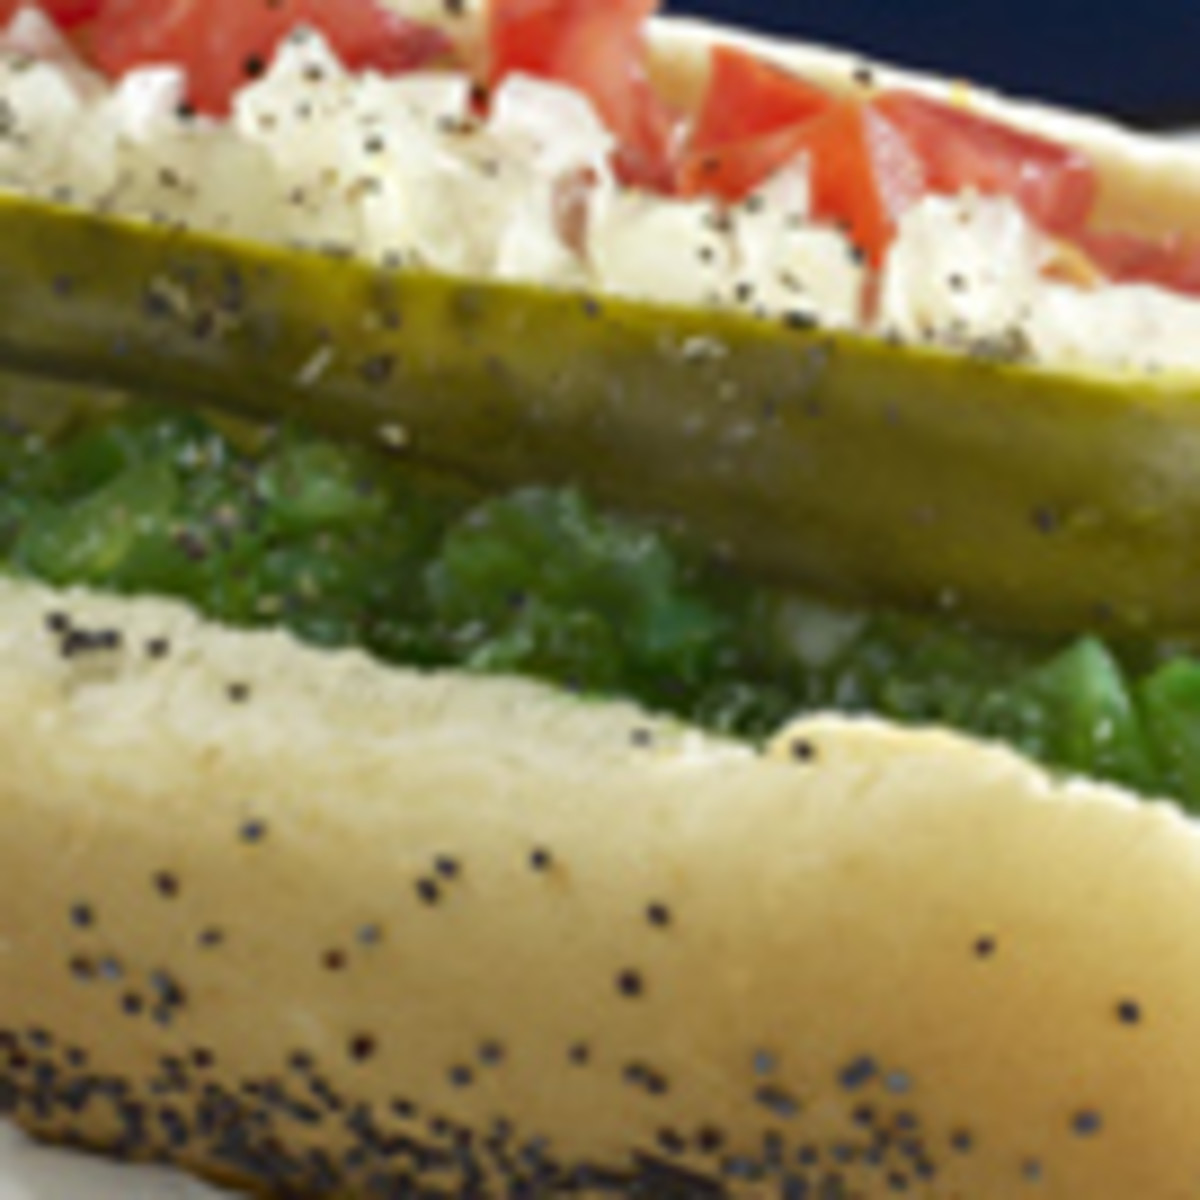 Austin Photo: Places_Food_wild_about_harrys_hot_dog